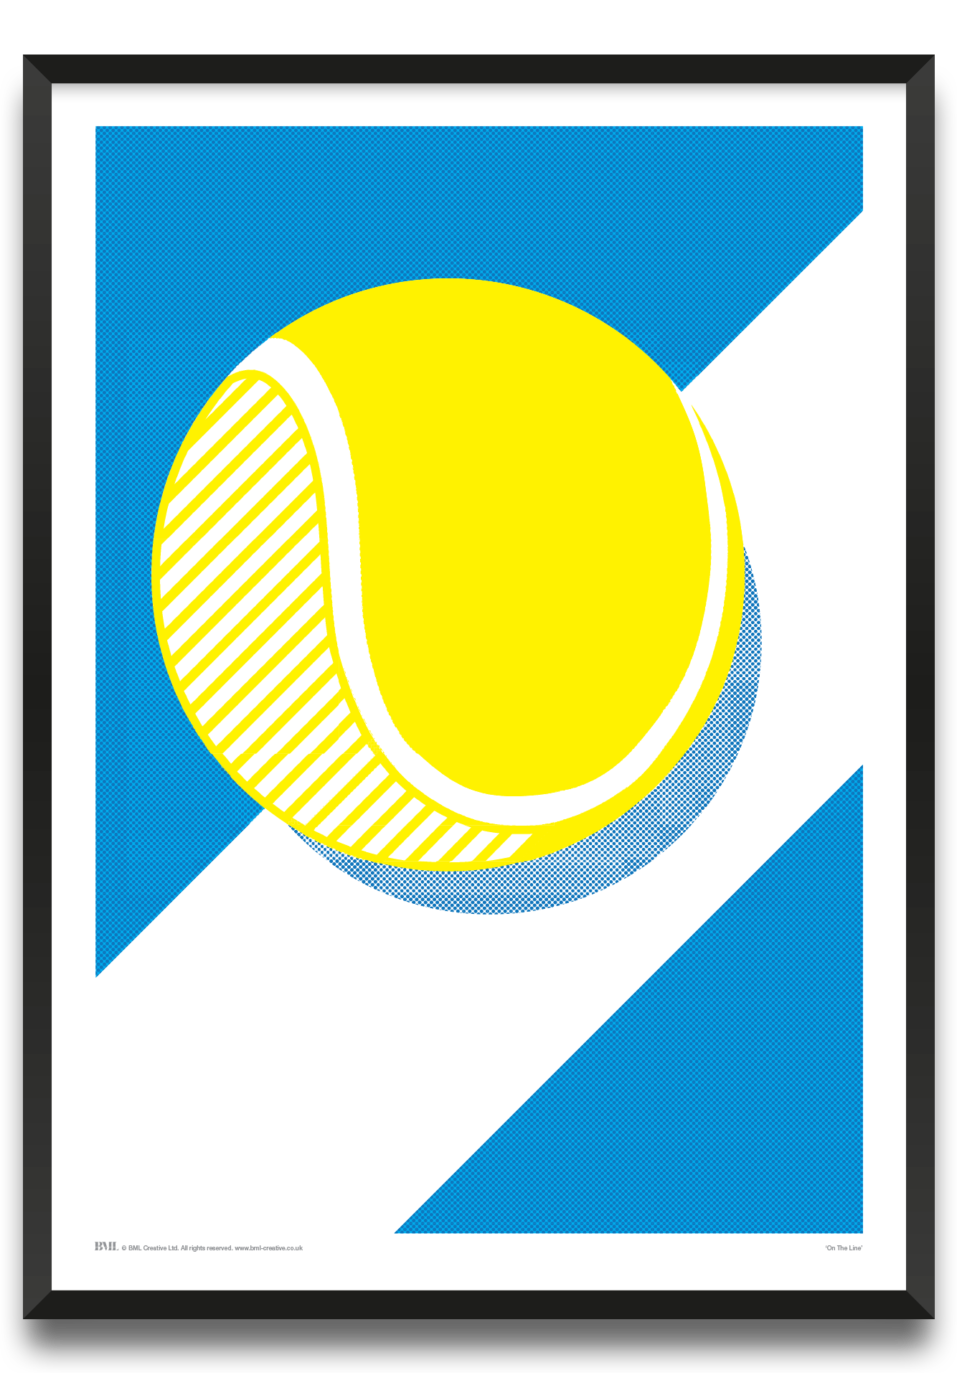 On The Line, tennis screenprint by Dave Holloway, Prints for Charity